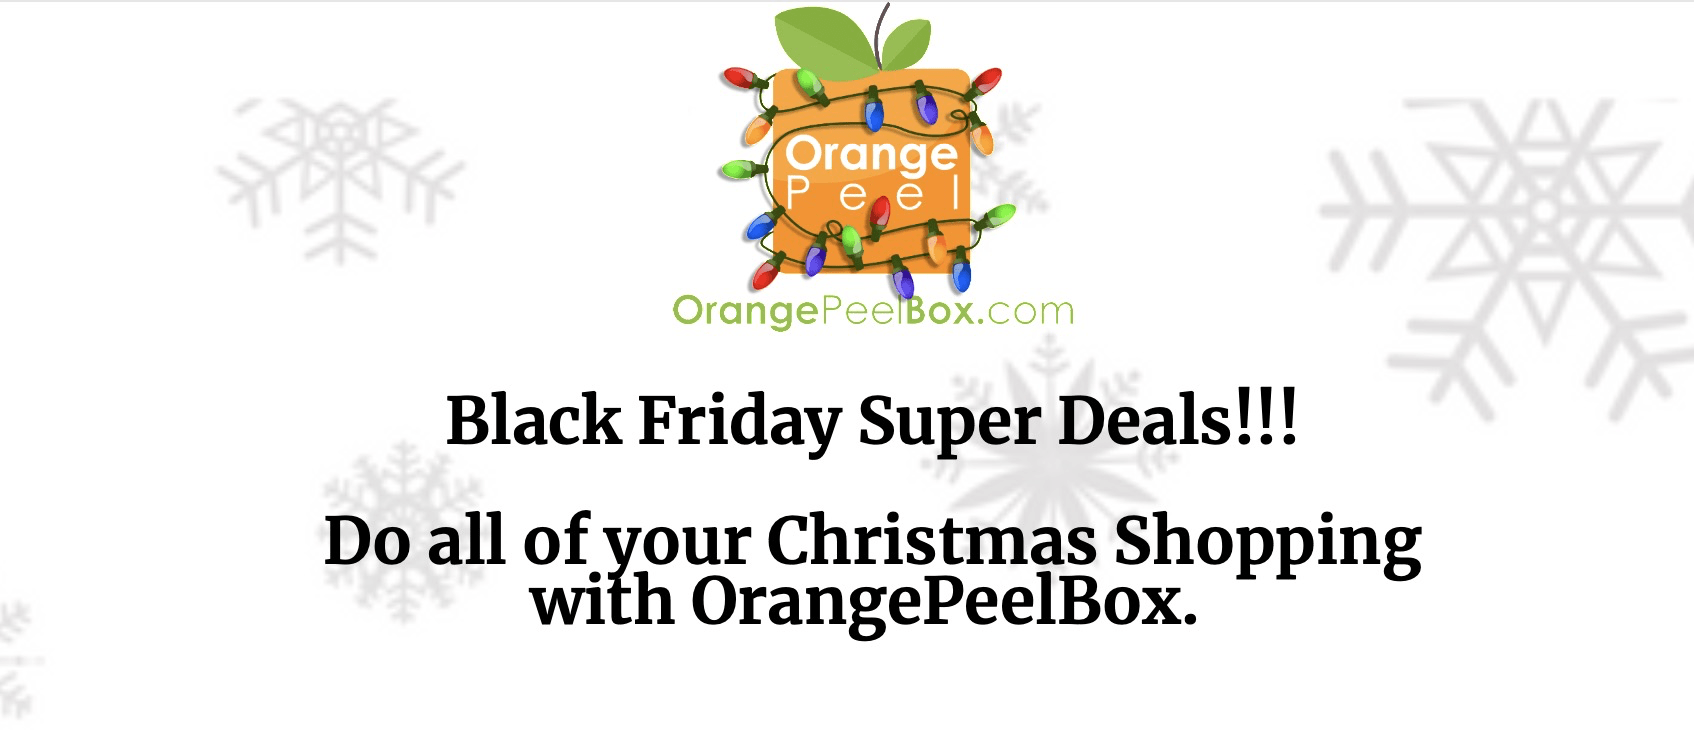 Orange Peel Box Black Friday Coupon: Get 40% OFF your first Orange Peel Box for a 1-year Subscription ONLY (4-Quarterly Boxes). Free Shipping.